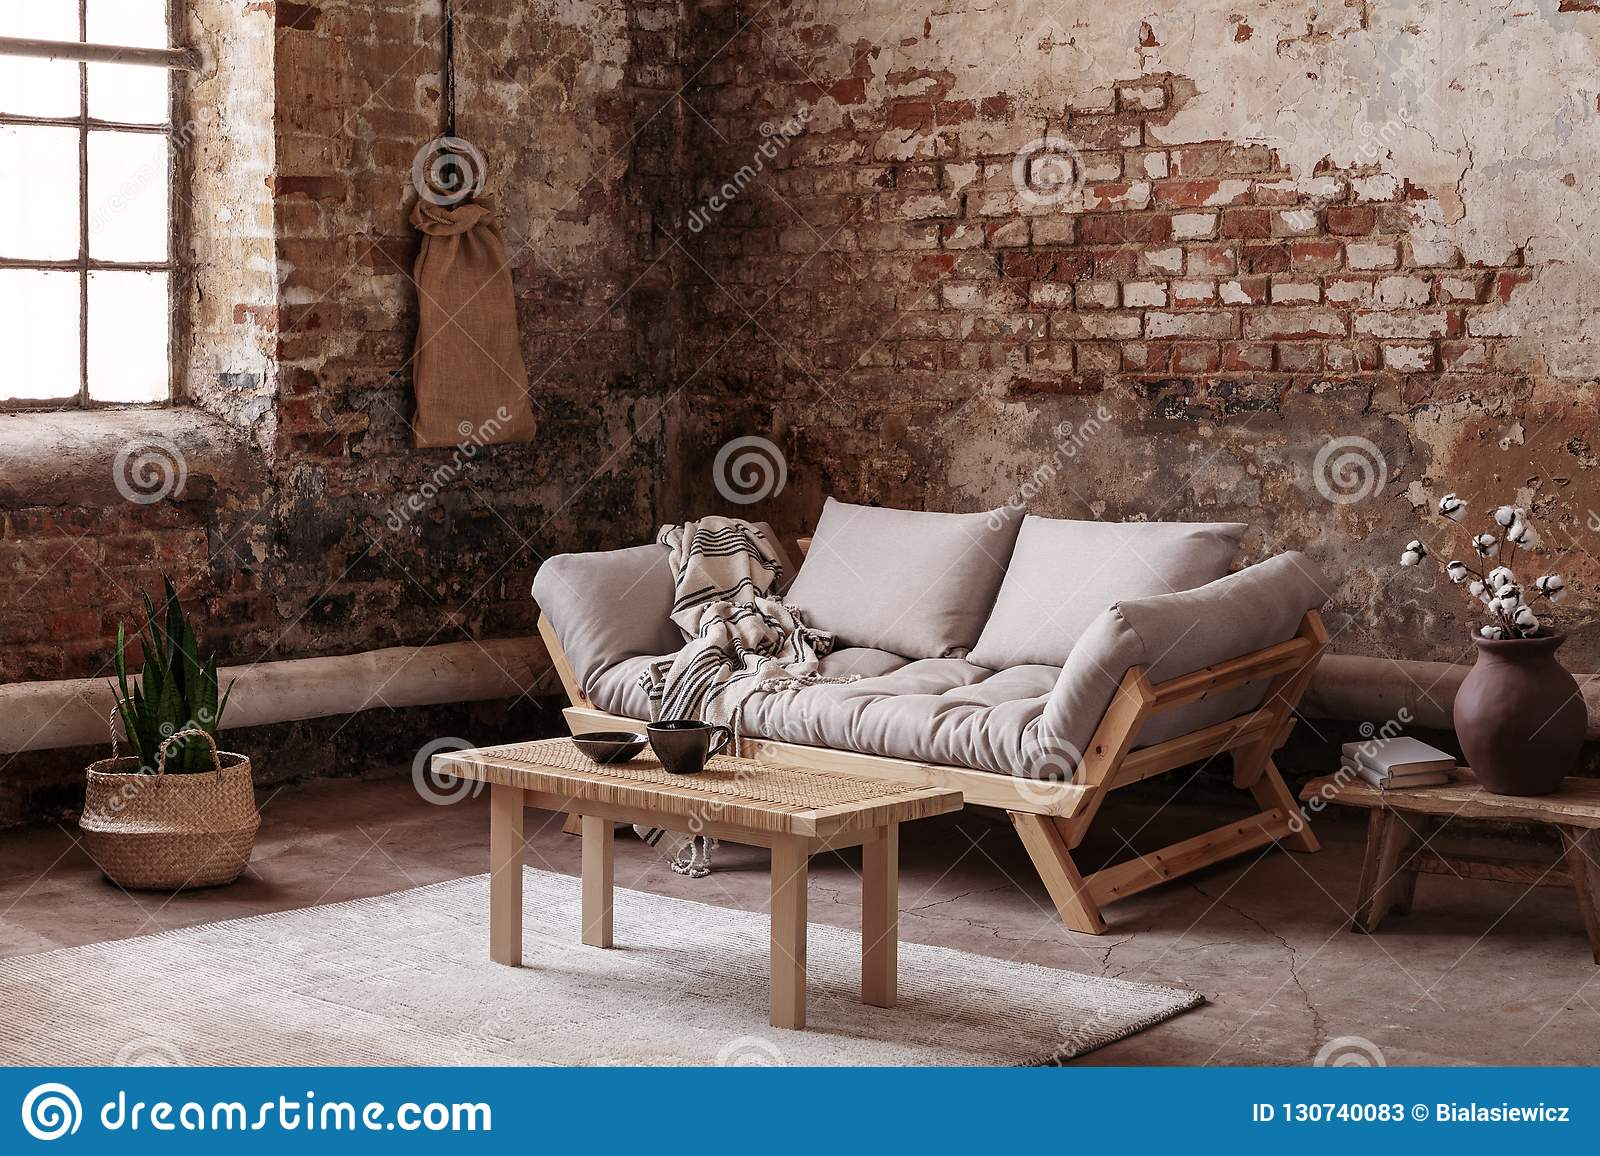 Wooden Table On Rug In Front Of Beige Couch In Apartment